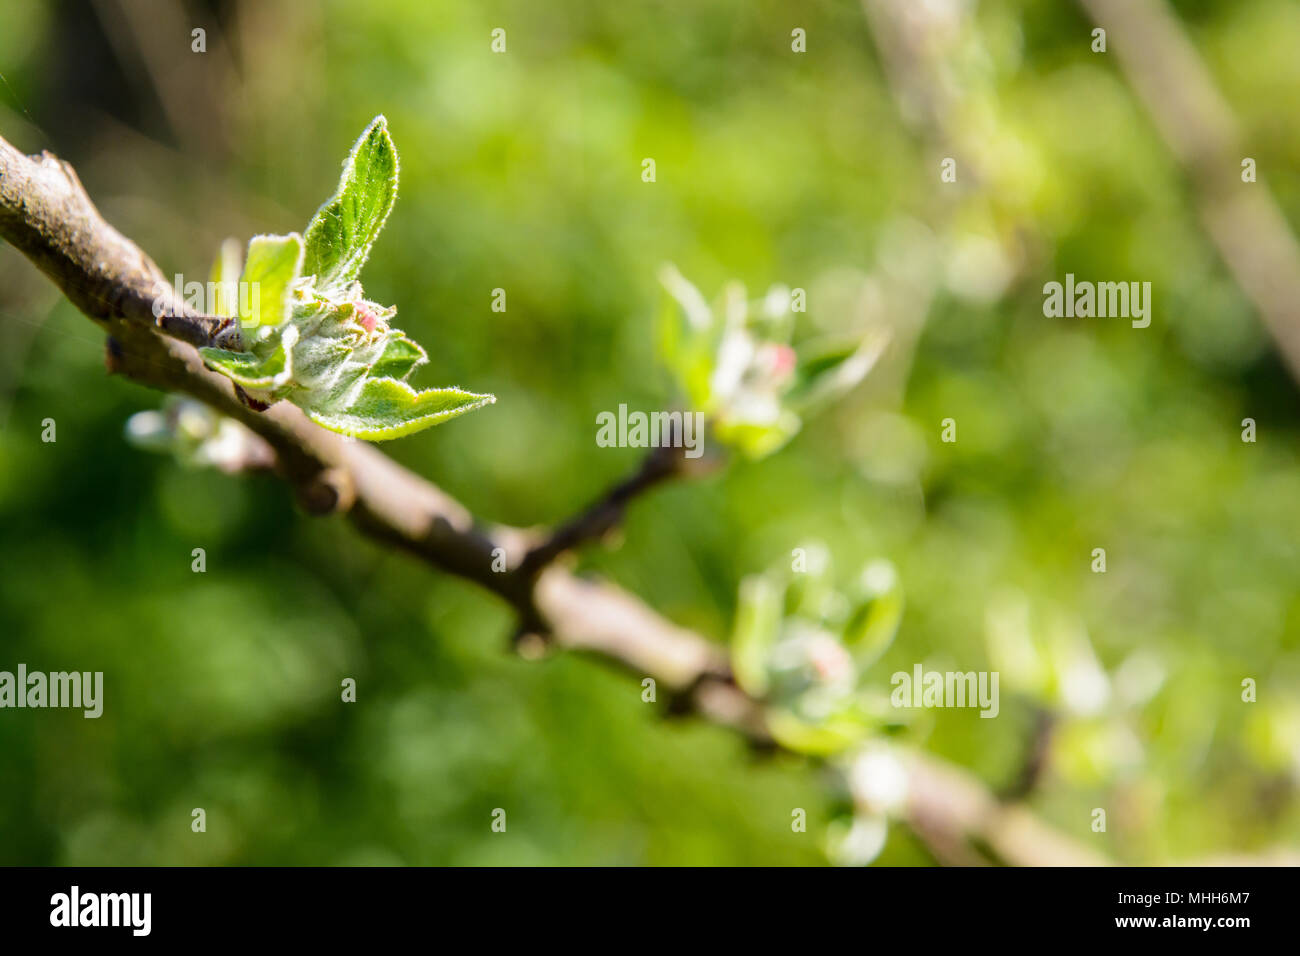 Close-up view of apple tree buds about to hatch at springtime, with a shalow depth of field against a blurry green background by a sunny day. - Stock Image